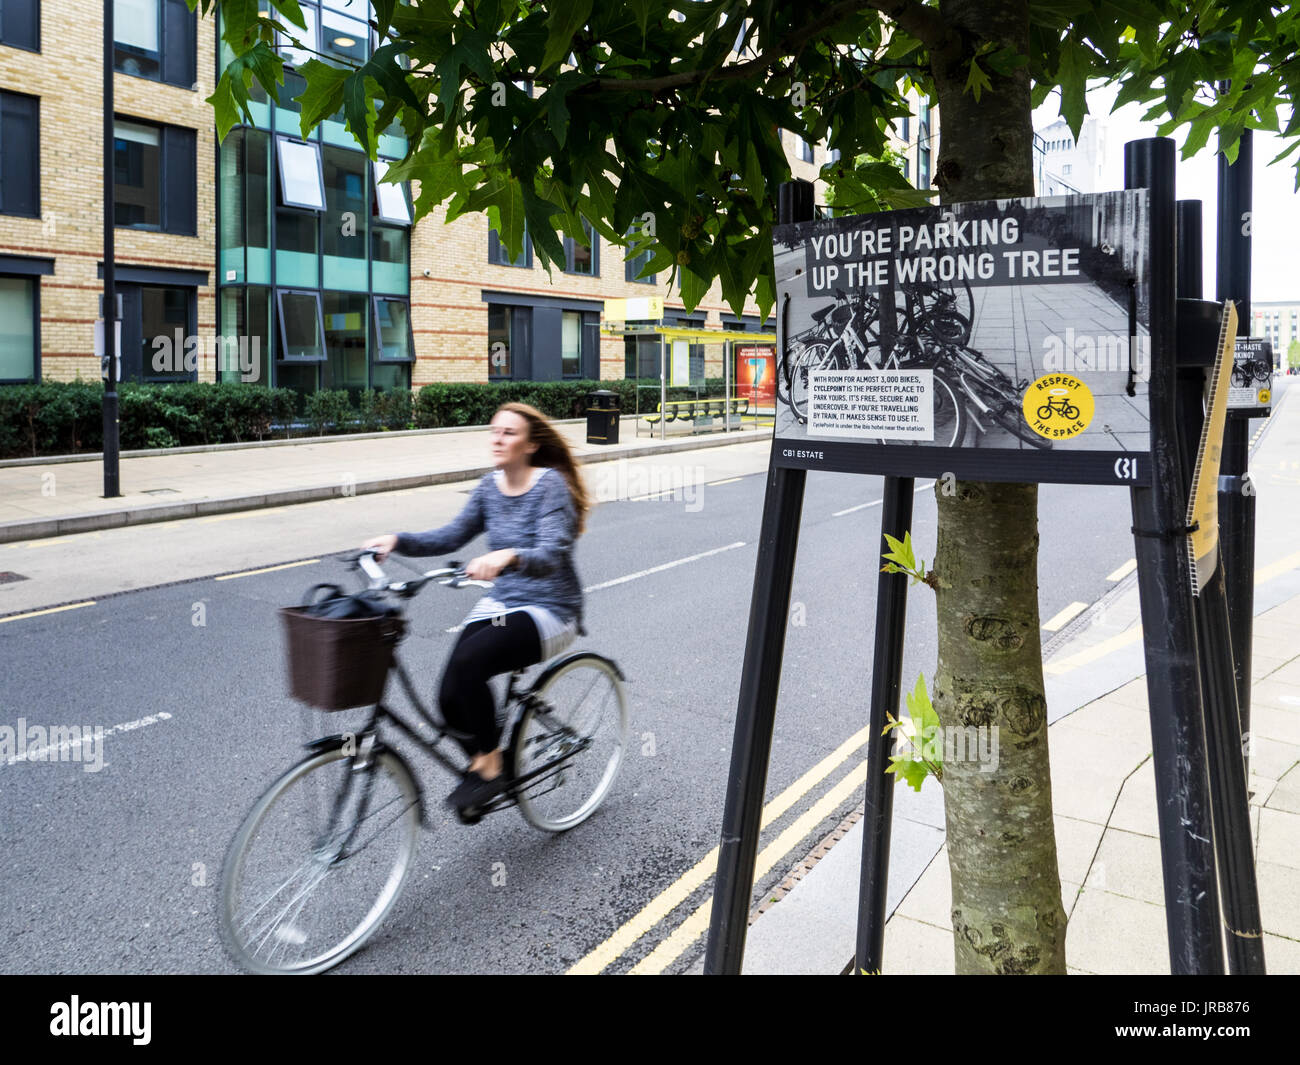 Cambridge bike congestion - Cyclists pass signs asking people not to attach bikes to street furniture, following the opening of a nearby cycle park - Stock Image